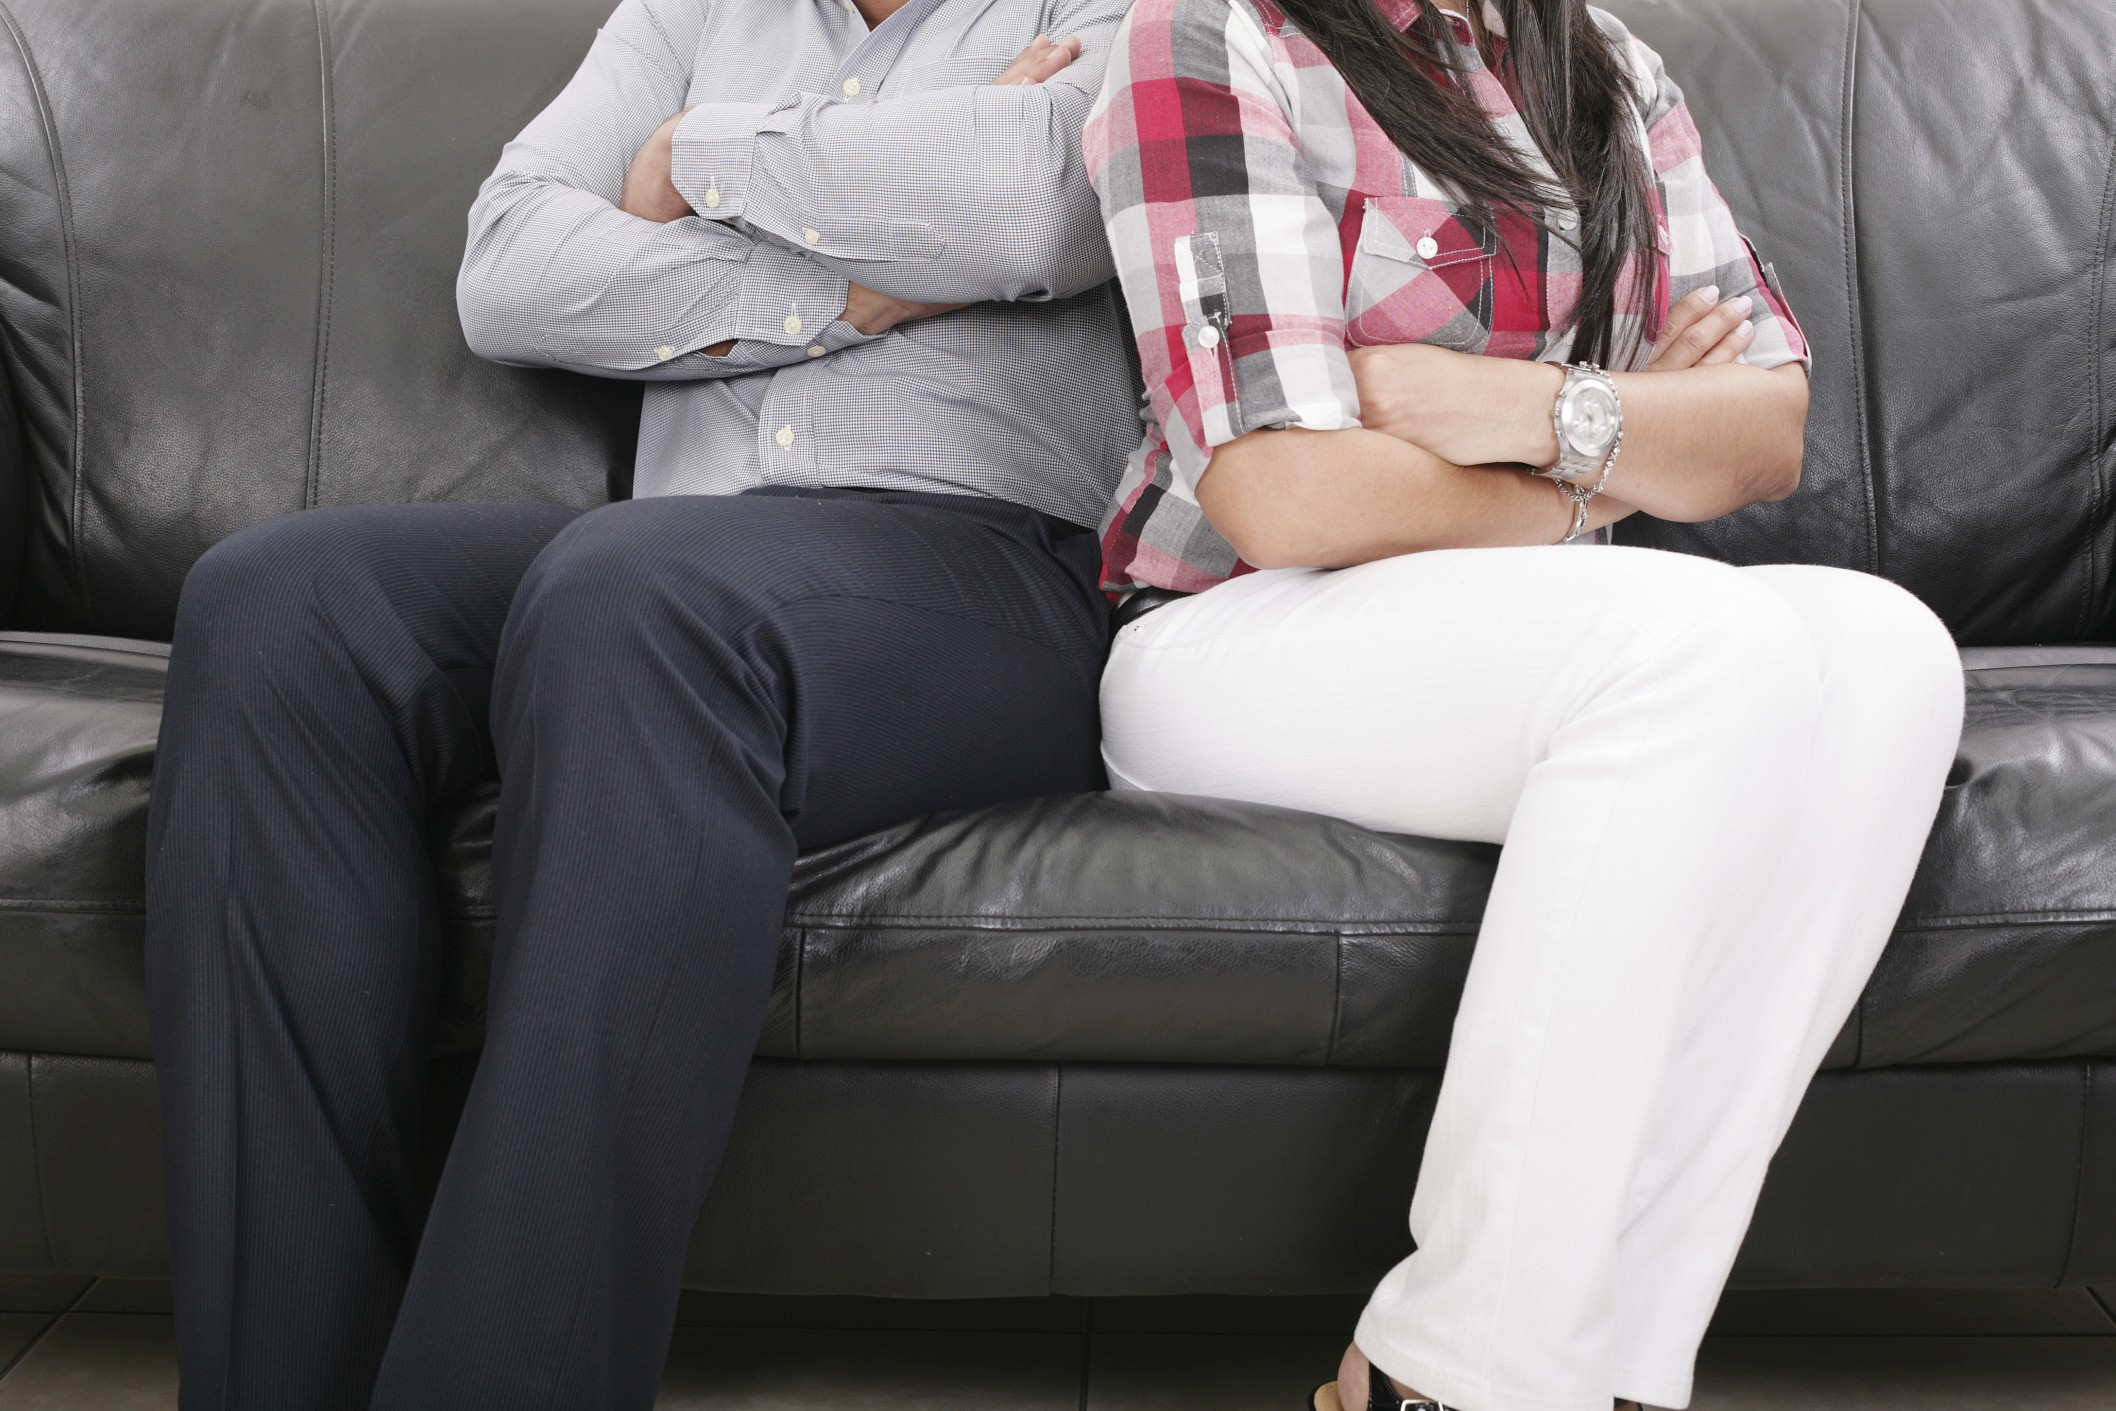 Does Your Marriage Need a Time-Out?